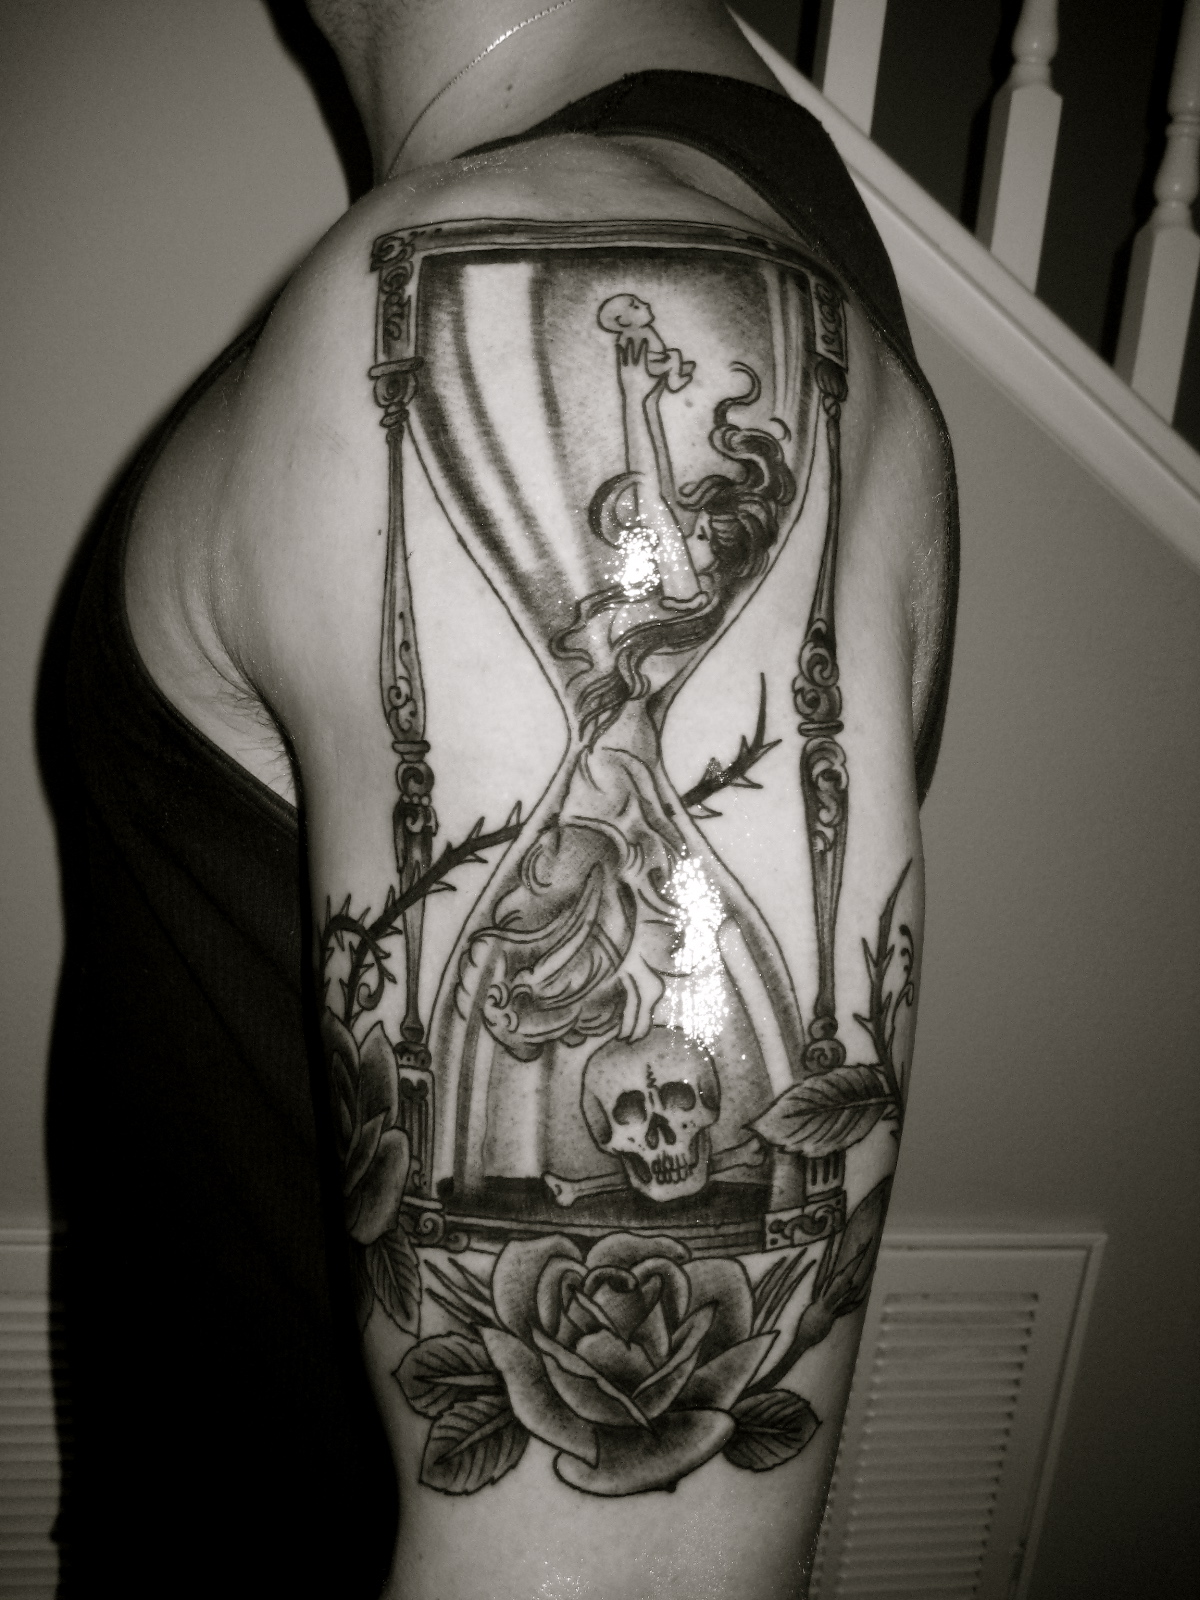 Hourglass tattoos and meanings